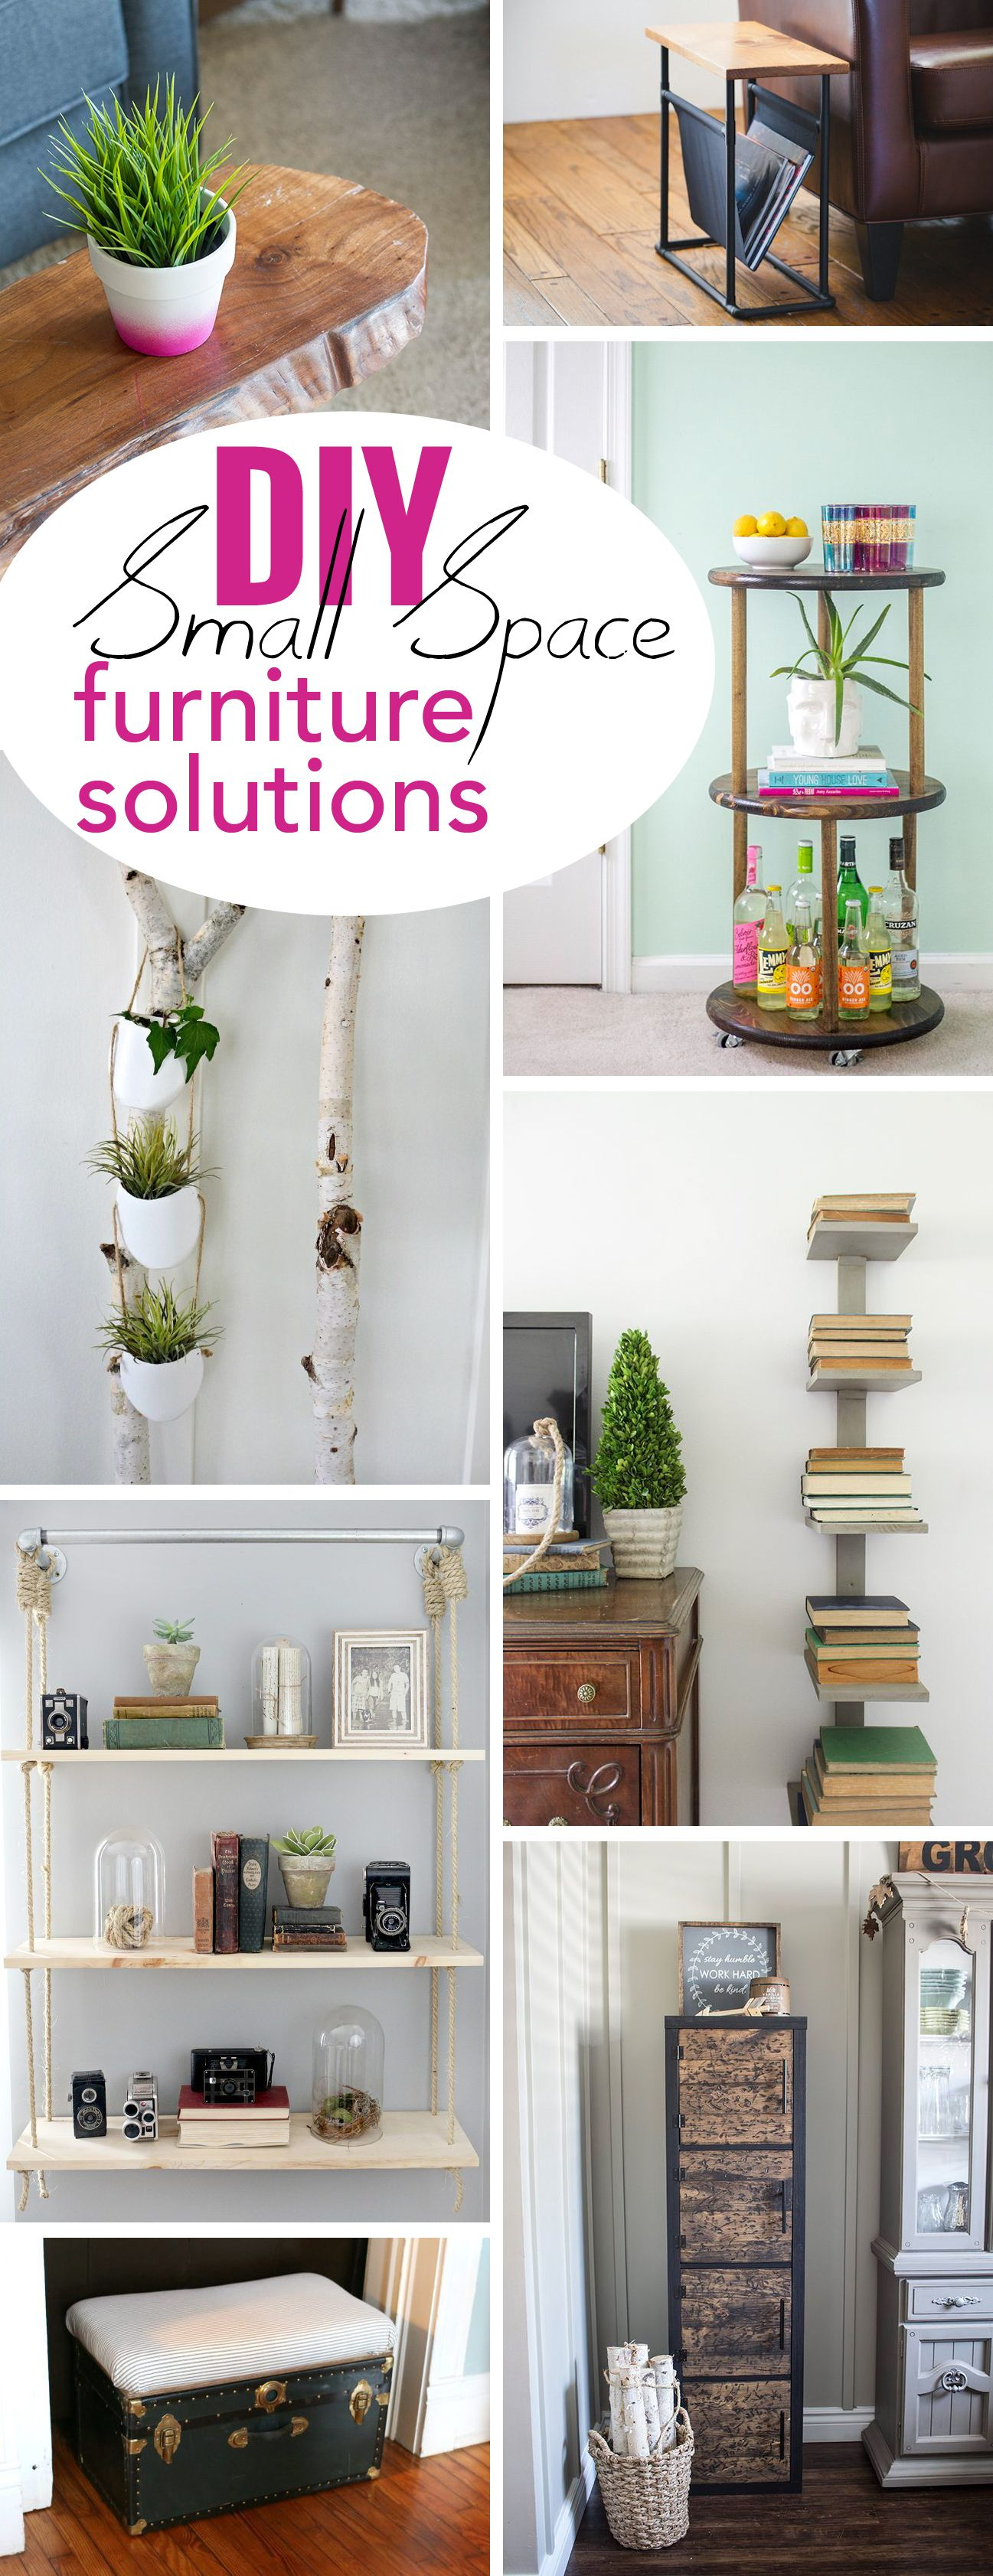 10 Small Space Furniture DIY Solutions Furniture for